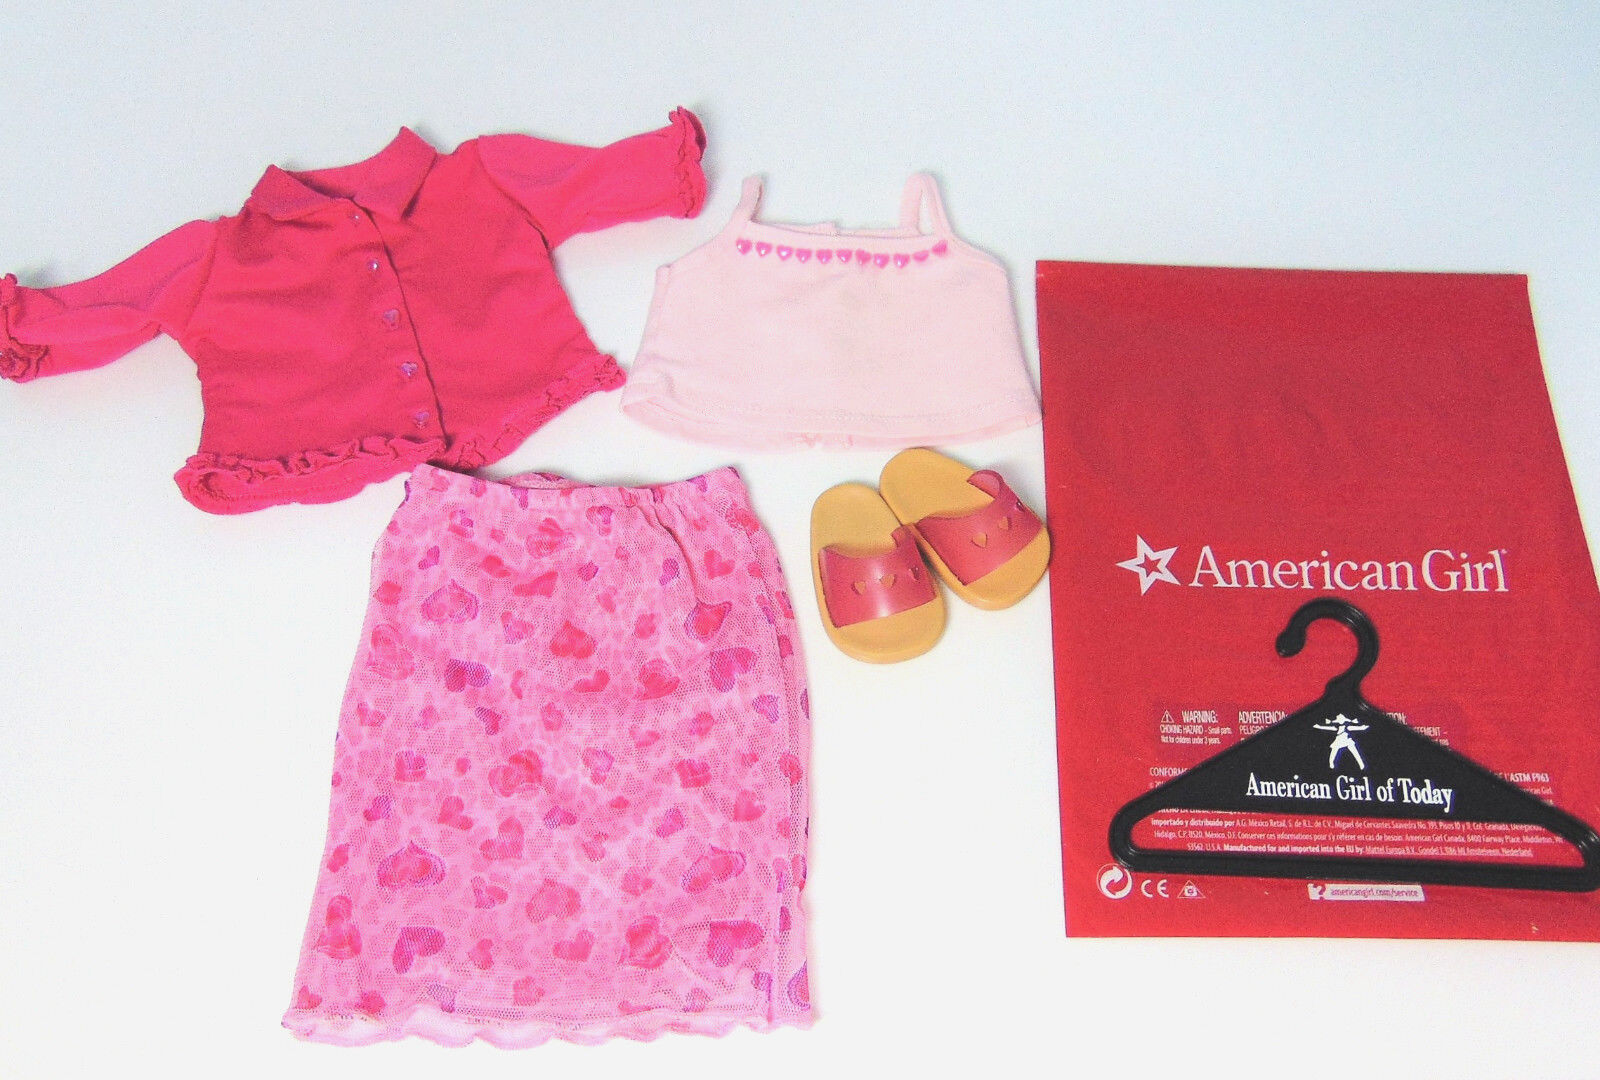 American Girl Puppe Kleidung Valentinstag Party Outfit Outfit Outfit Rosa Herzen Top Minirock 298e7f